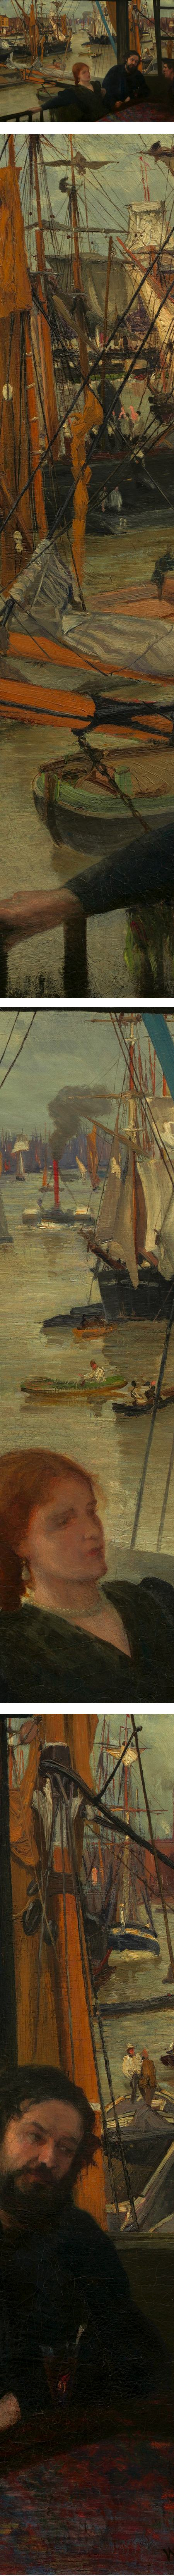 Wapping, James McNeill Whistler